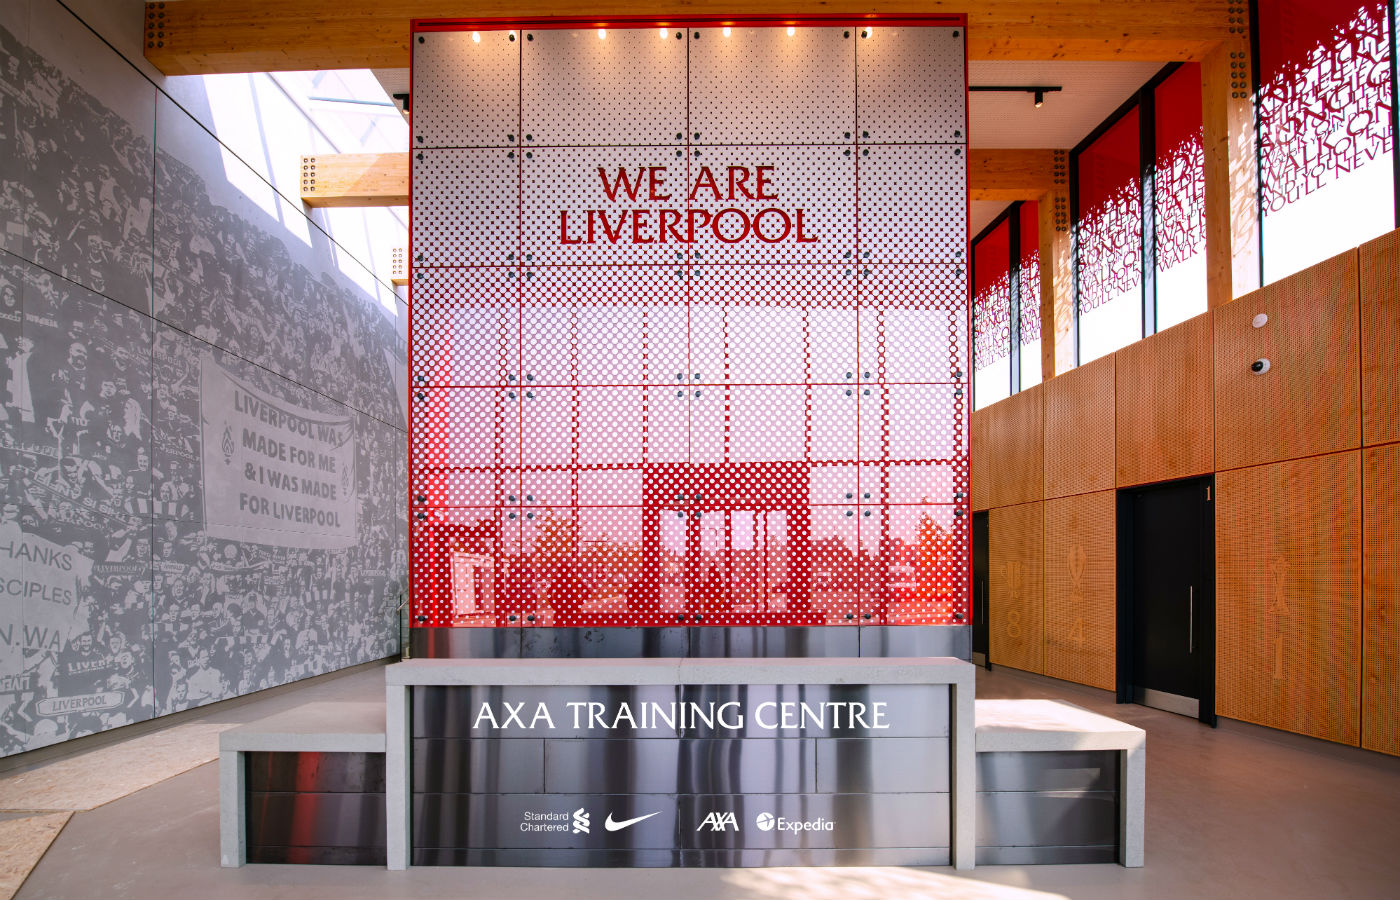 AXA boosts partnership with Liverpool FC - secures naming rights